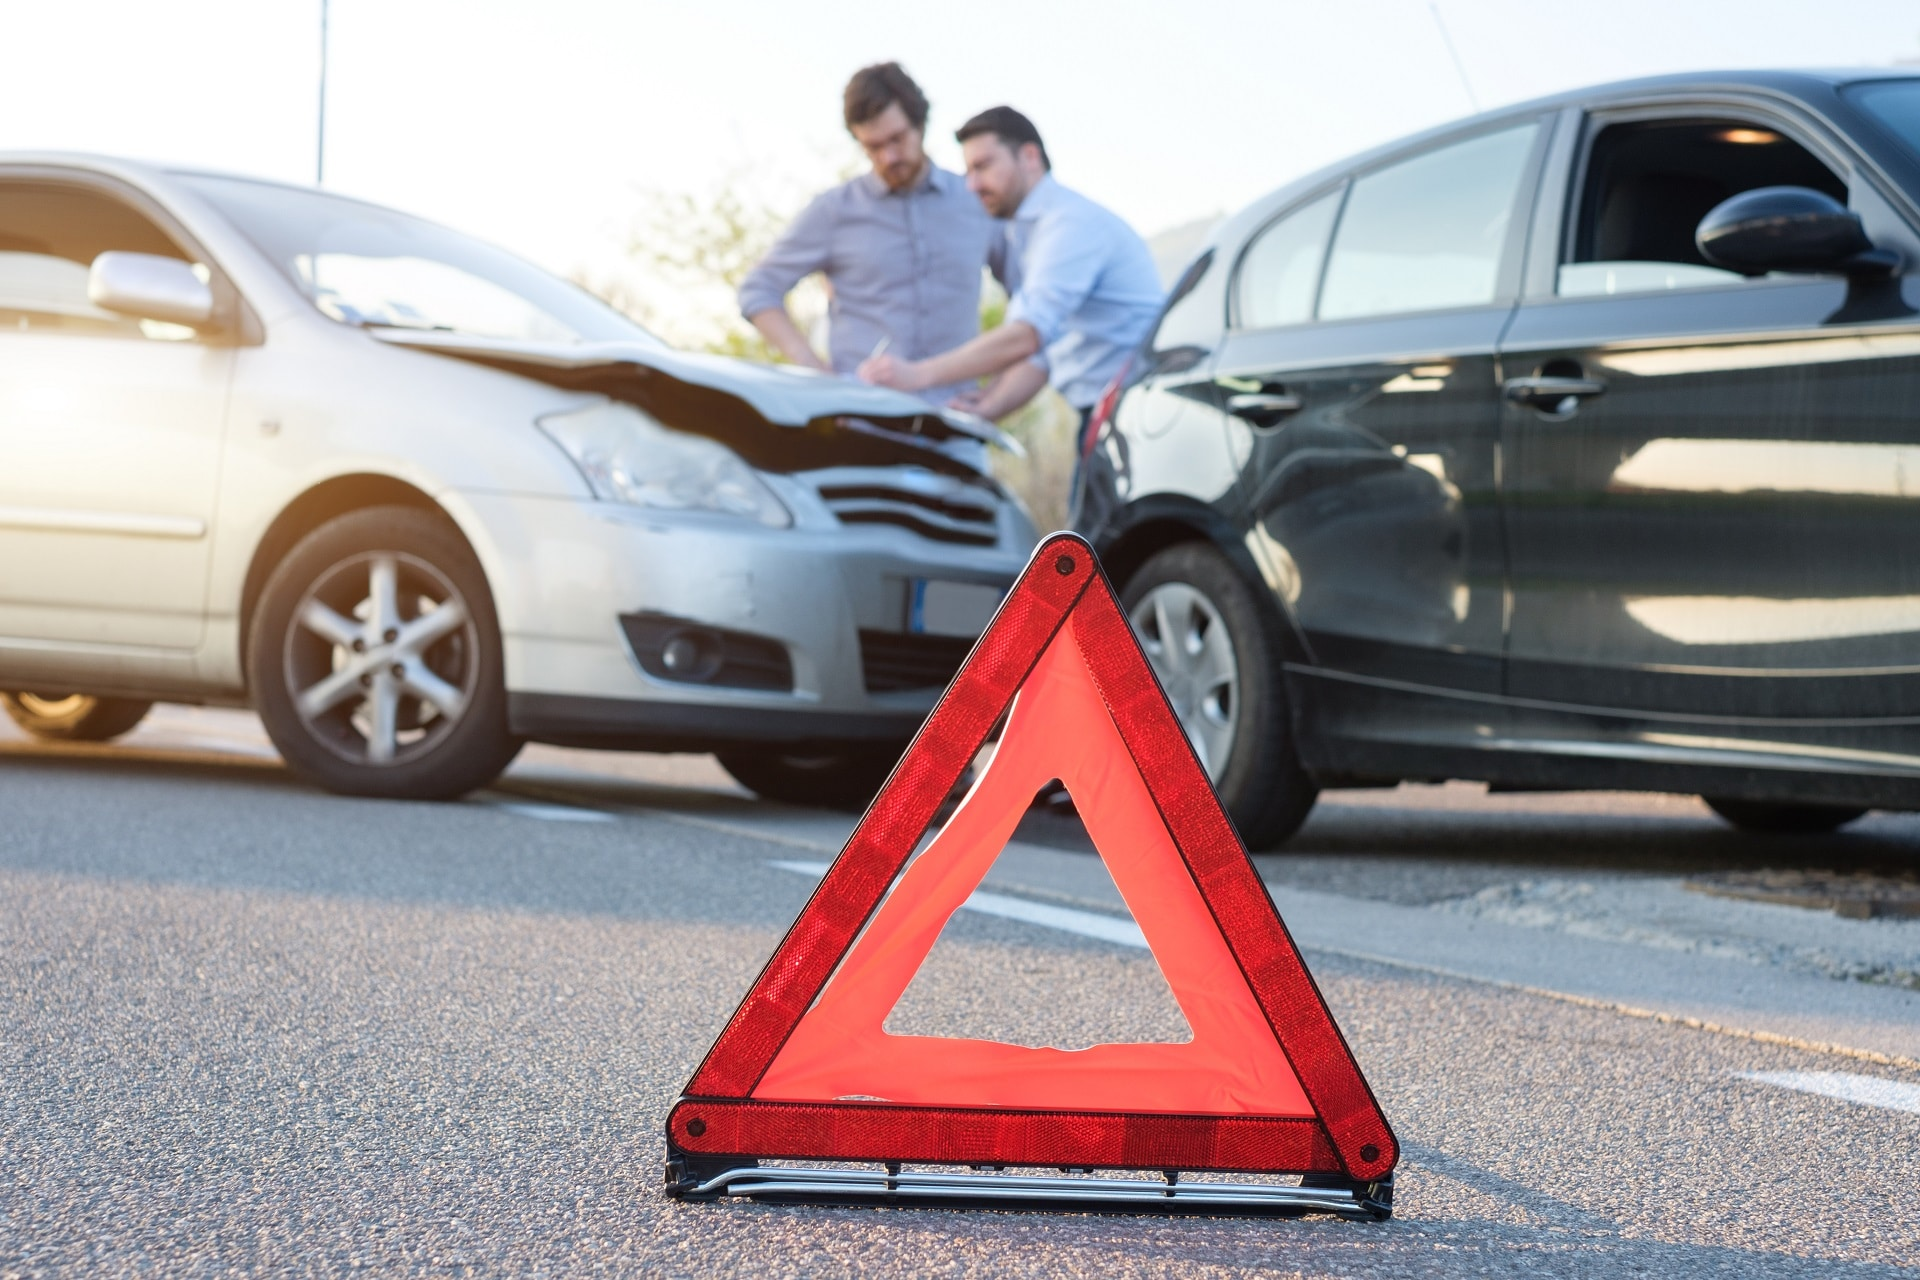 How Long Will It Take to Recover Compensation After a California Auto Accident?